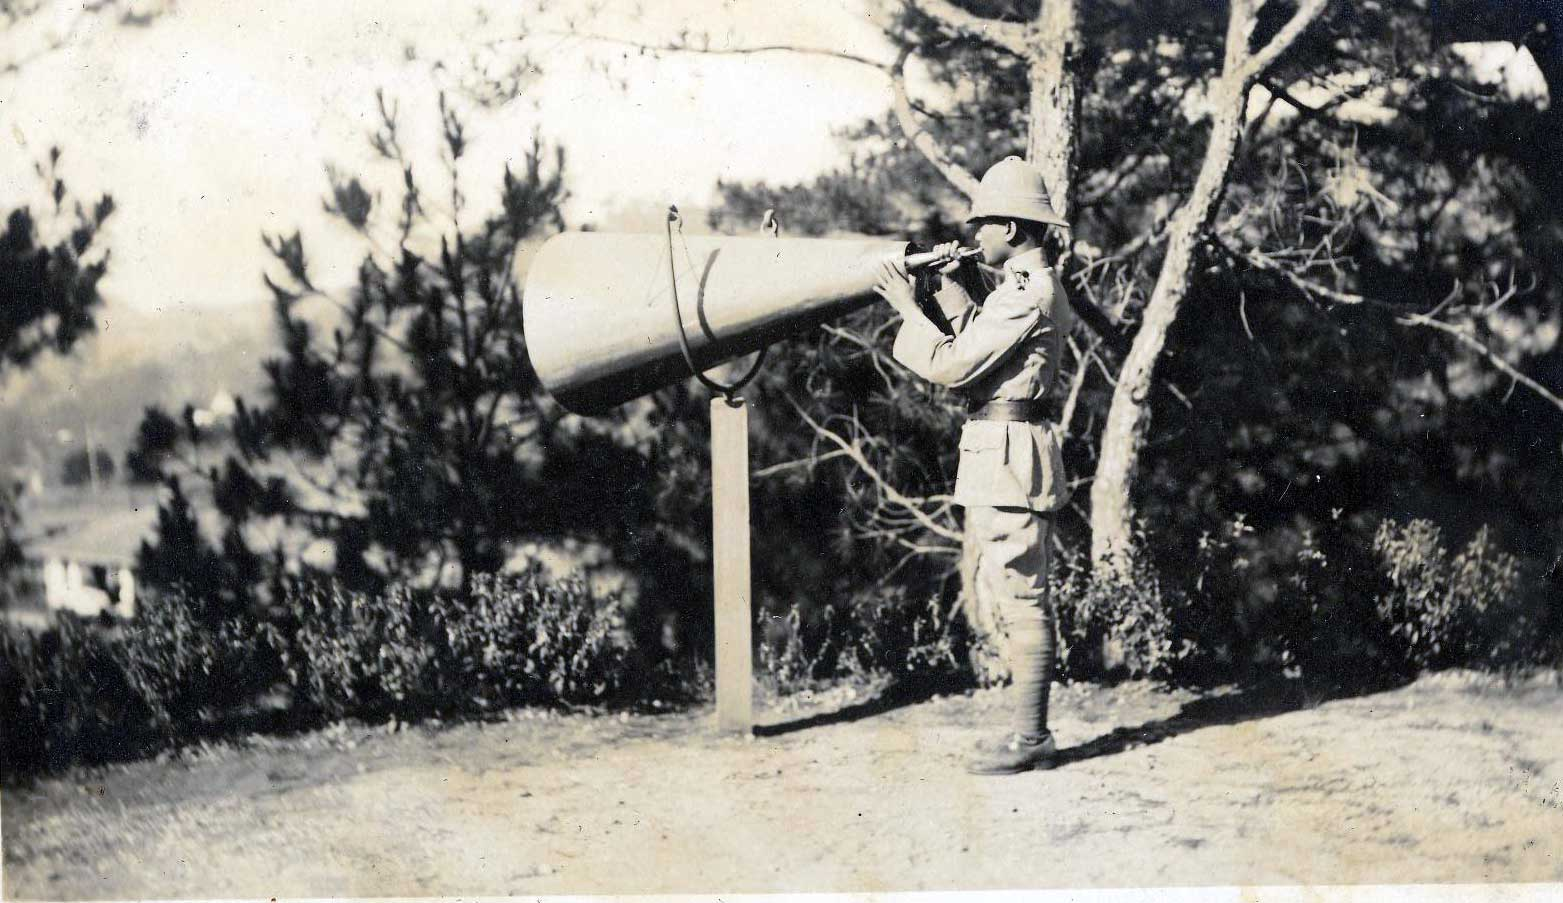 Featured photograph of a Filipino soldier blowing a horn to call for formation, from the University of Michigan Special Collections Library.